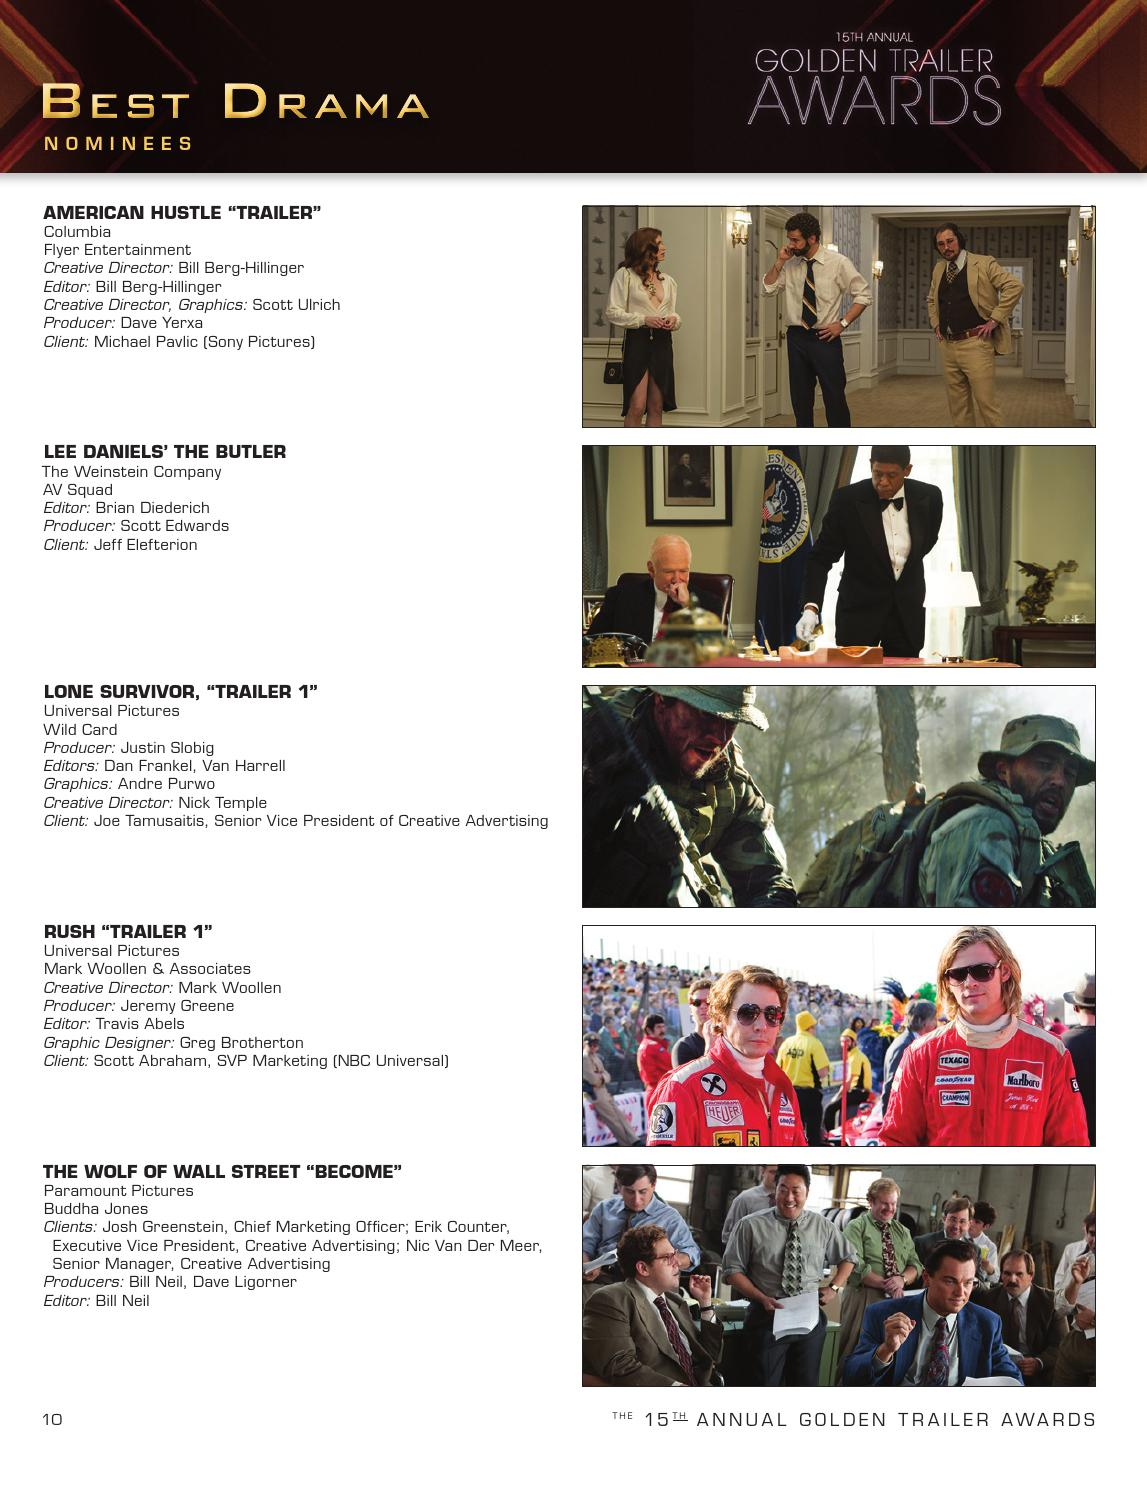 15th Annual Golden Trailer Awards Program Book (2014) by